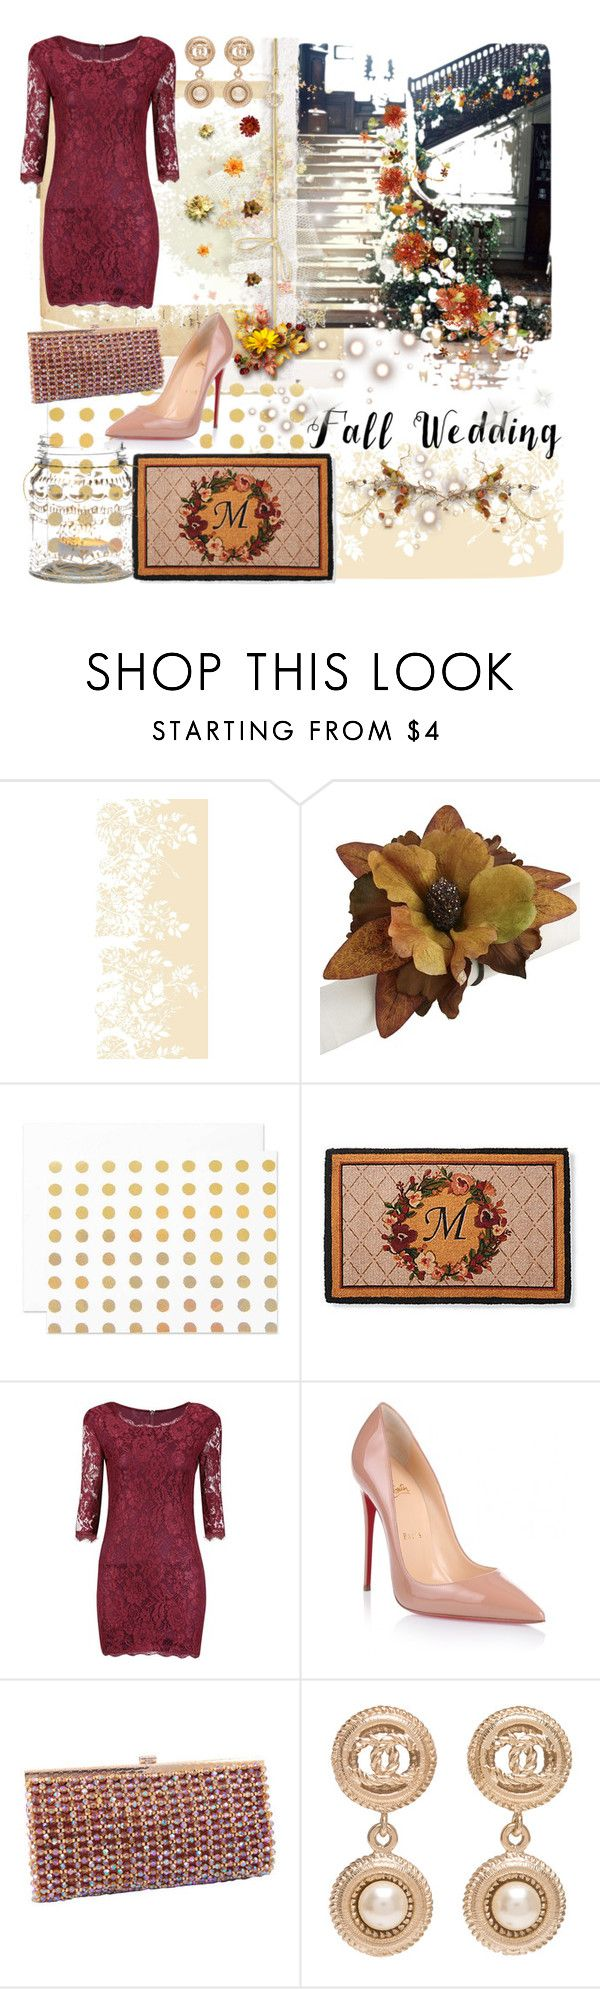 """""""Set 445: Fall Wedding"""" by ussms1107 ❤ liked on Polyvore featuring Timorous Beasties, Reception, Pier 1 Imports, The Pink Orange, Frontgate, Christian Louboutin, Chanel, Cultural Intrigue, contest and WhatToWear"""